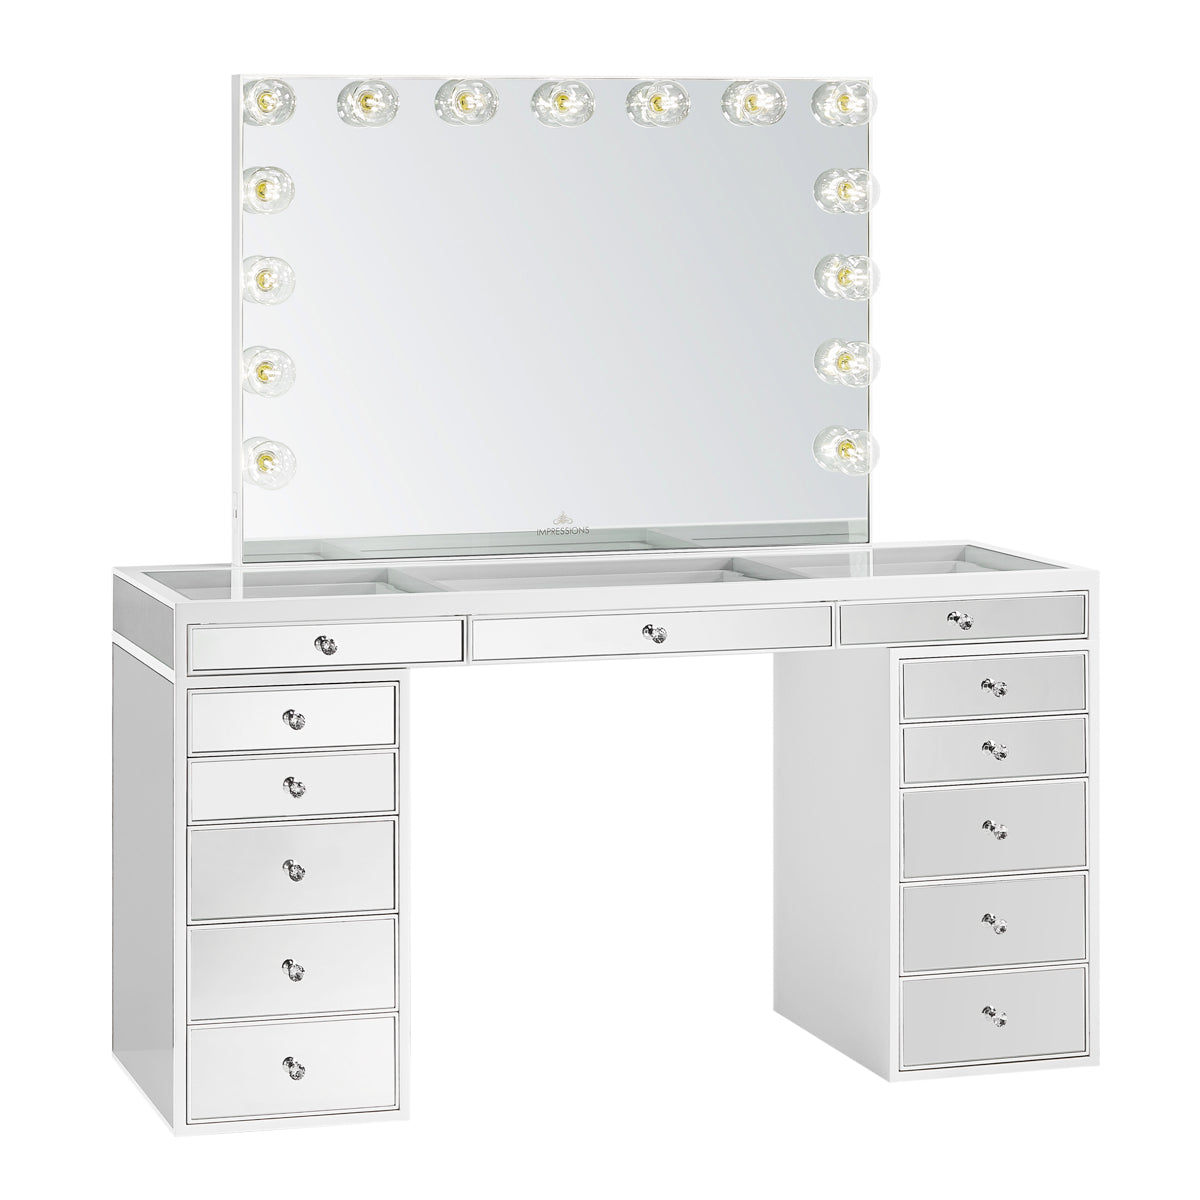 SlayStation® Pro Premium Mirrored Vanity Table ...